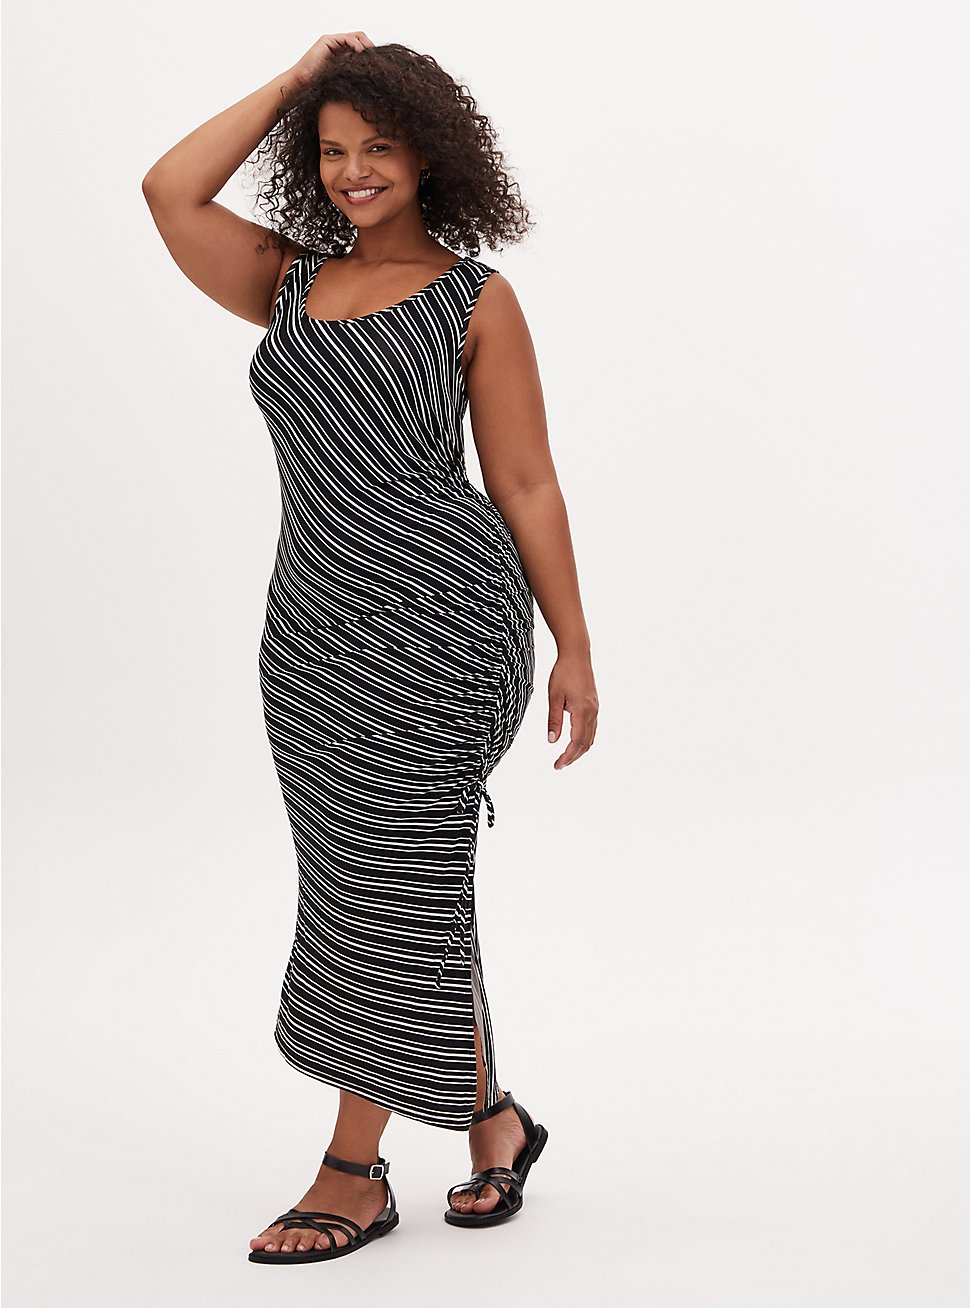 Super Soft Black & White Stripe Asymmetrical Drawstring Midi Dress, STRIPE -BLACK, hi-res